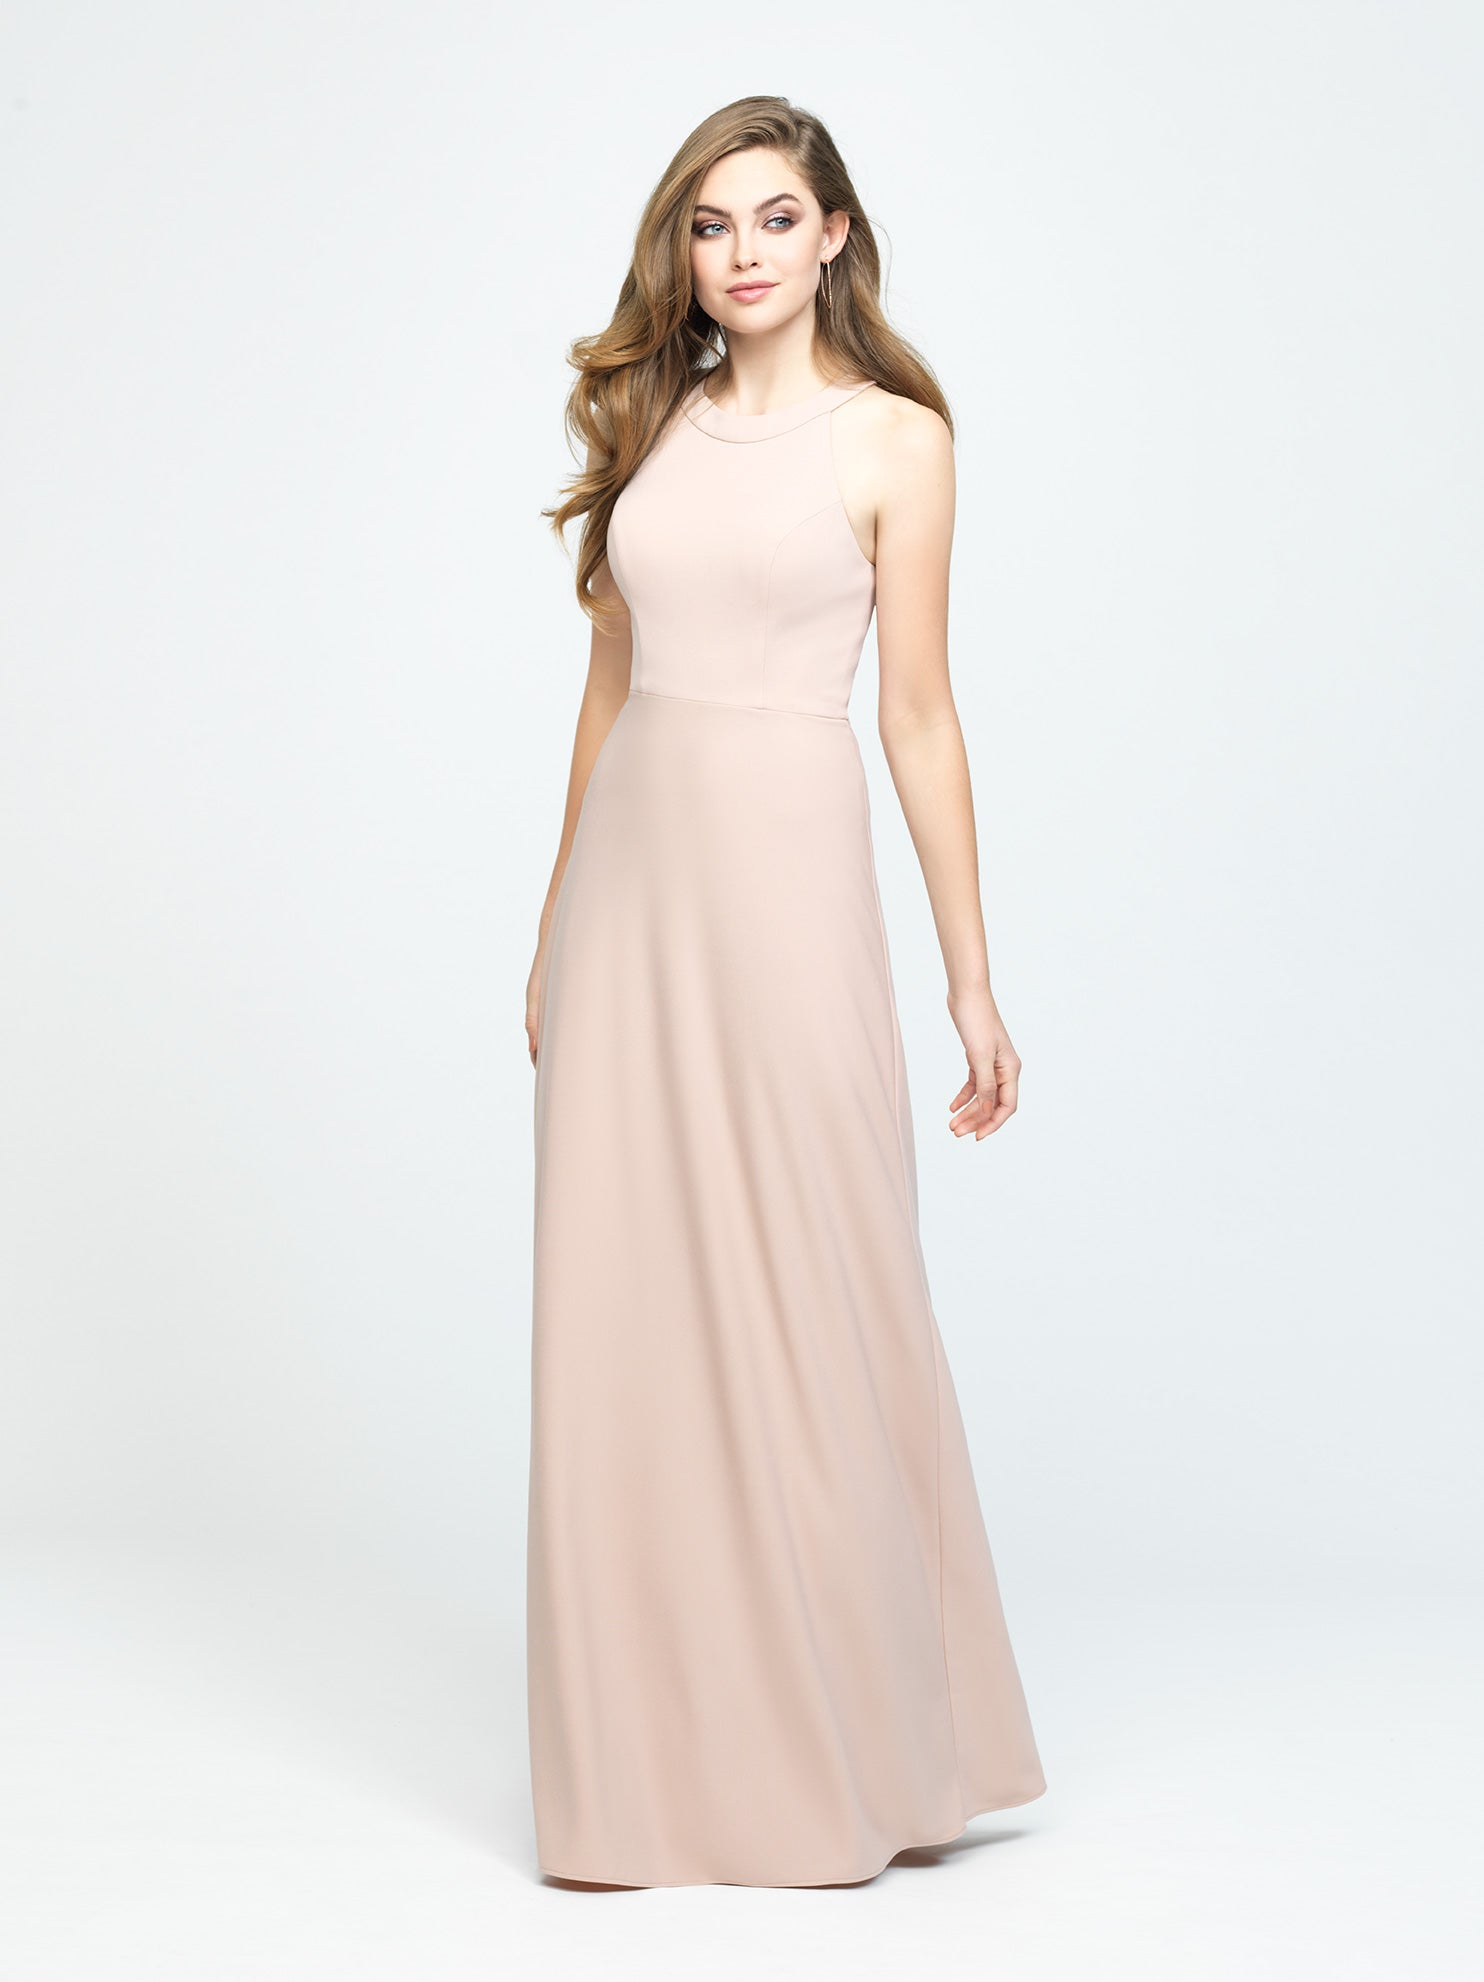 Champagne Halter A-Line Dress